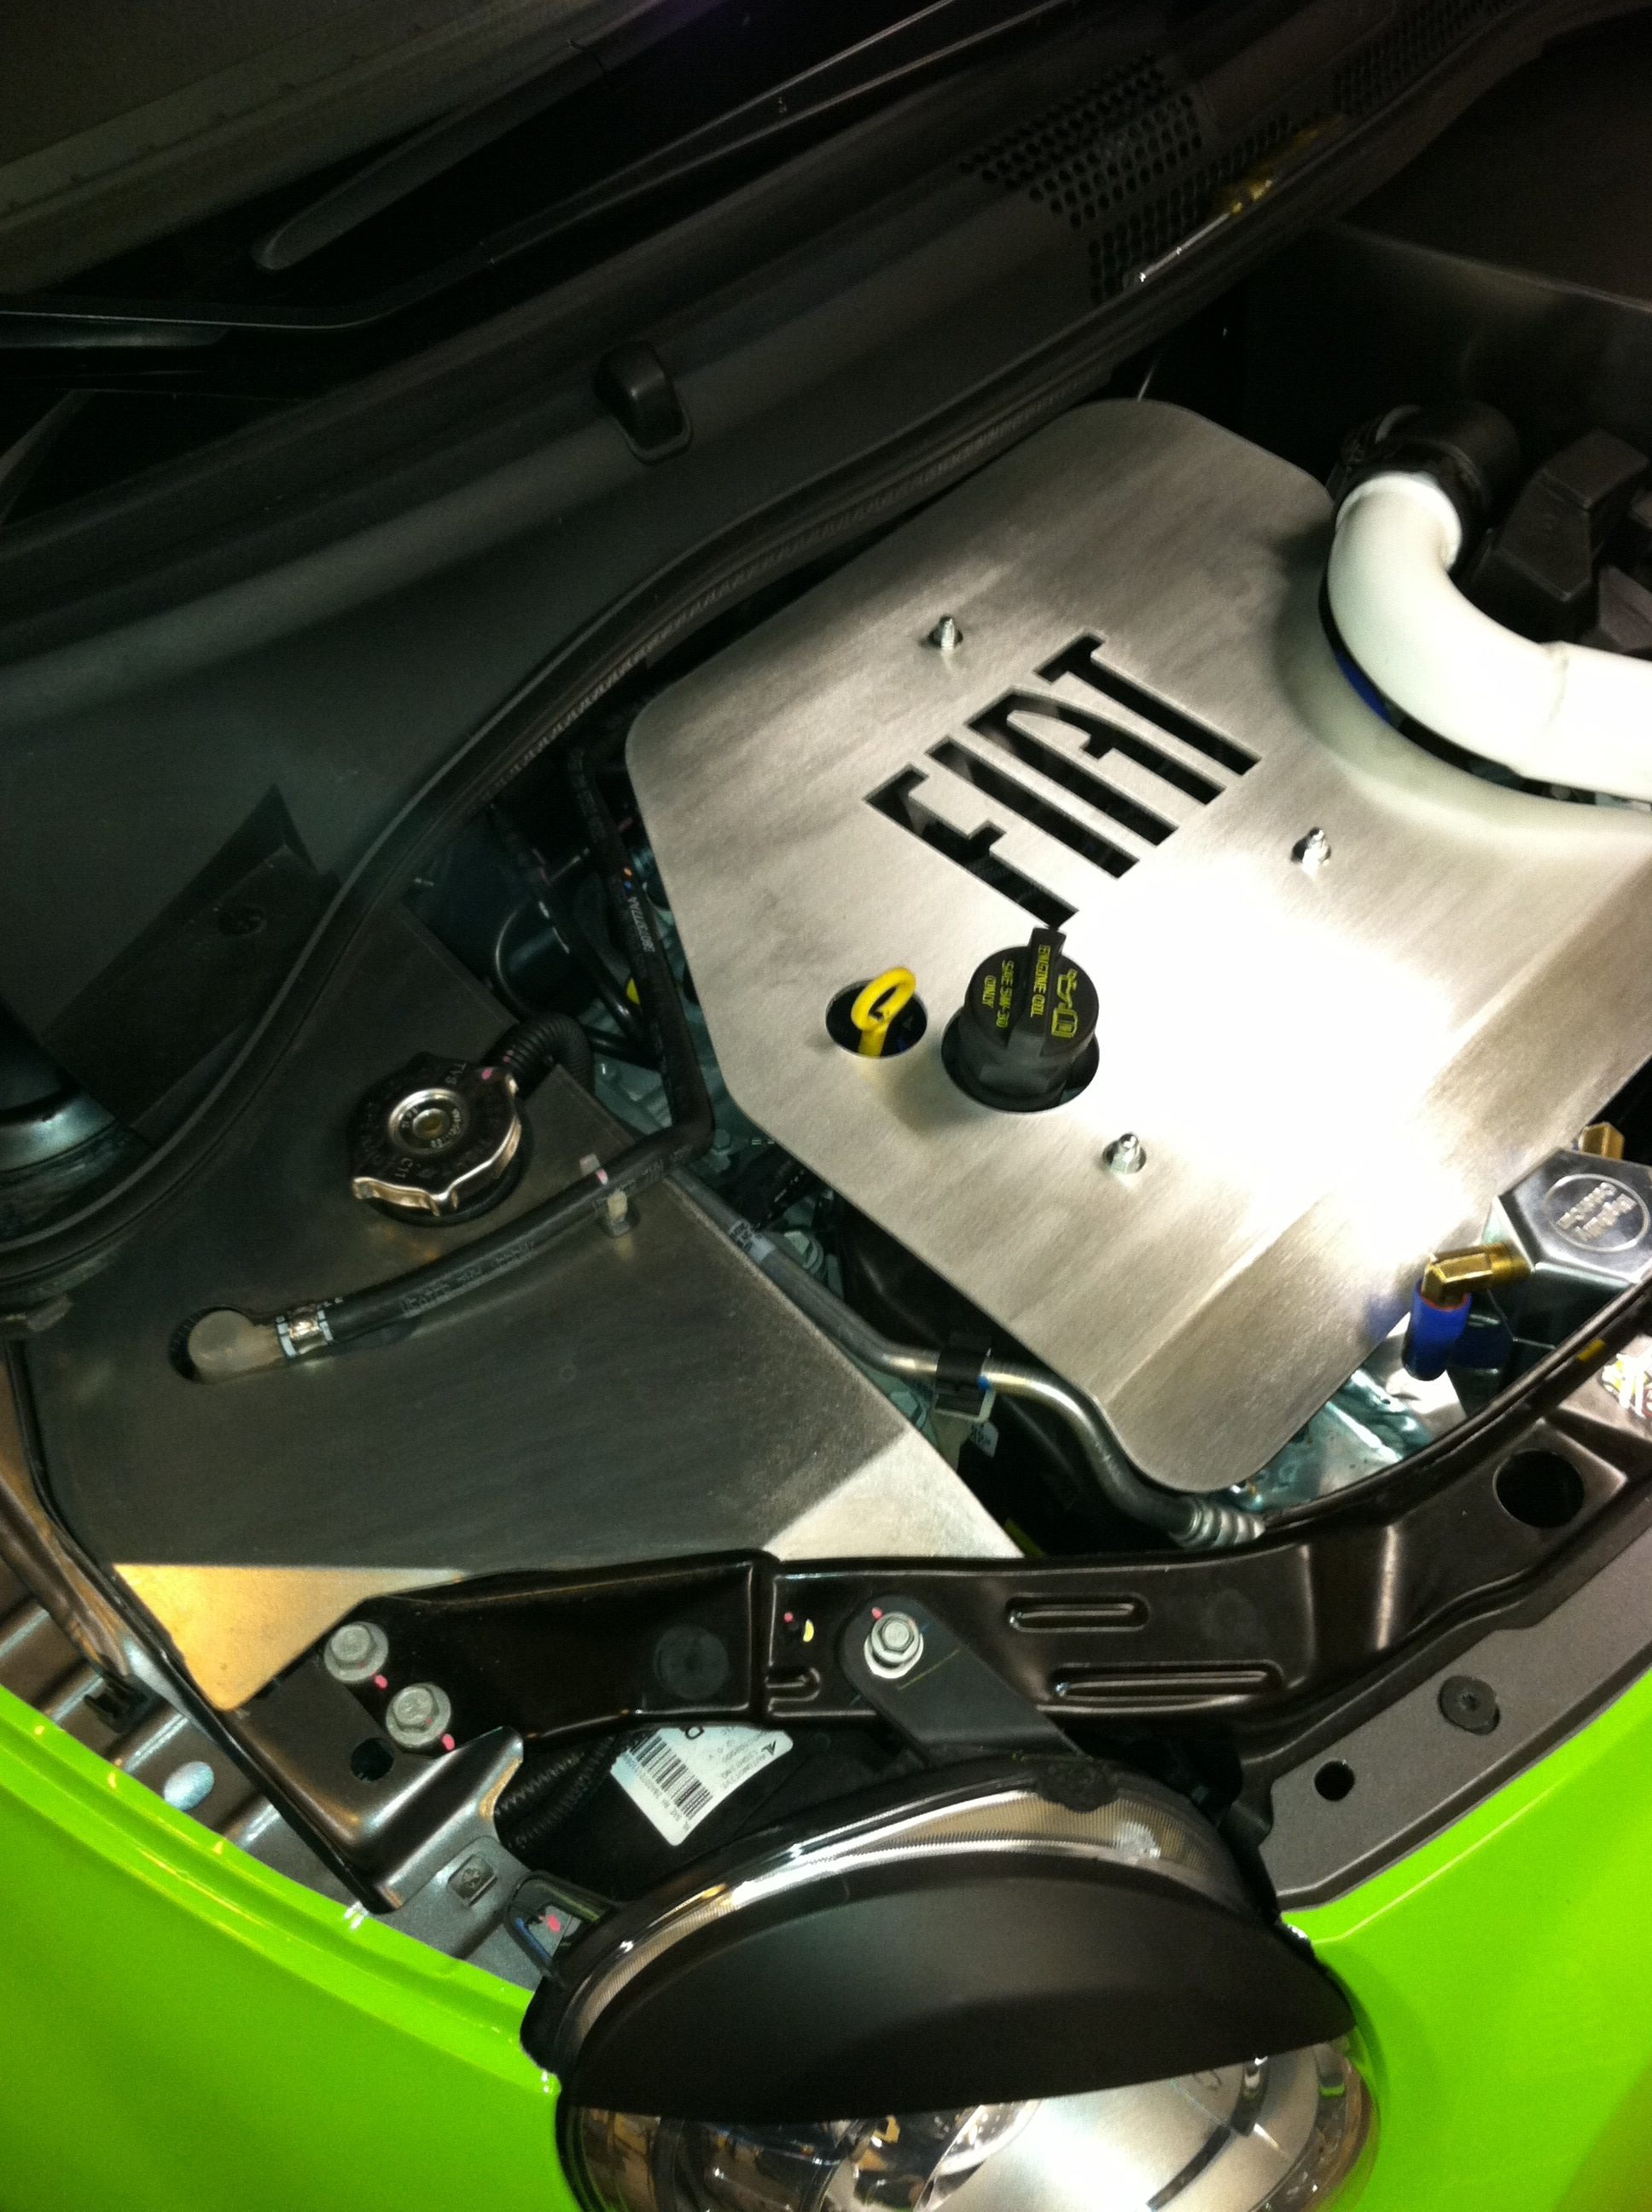 Fiat 500 Left Side Coolant Cover